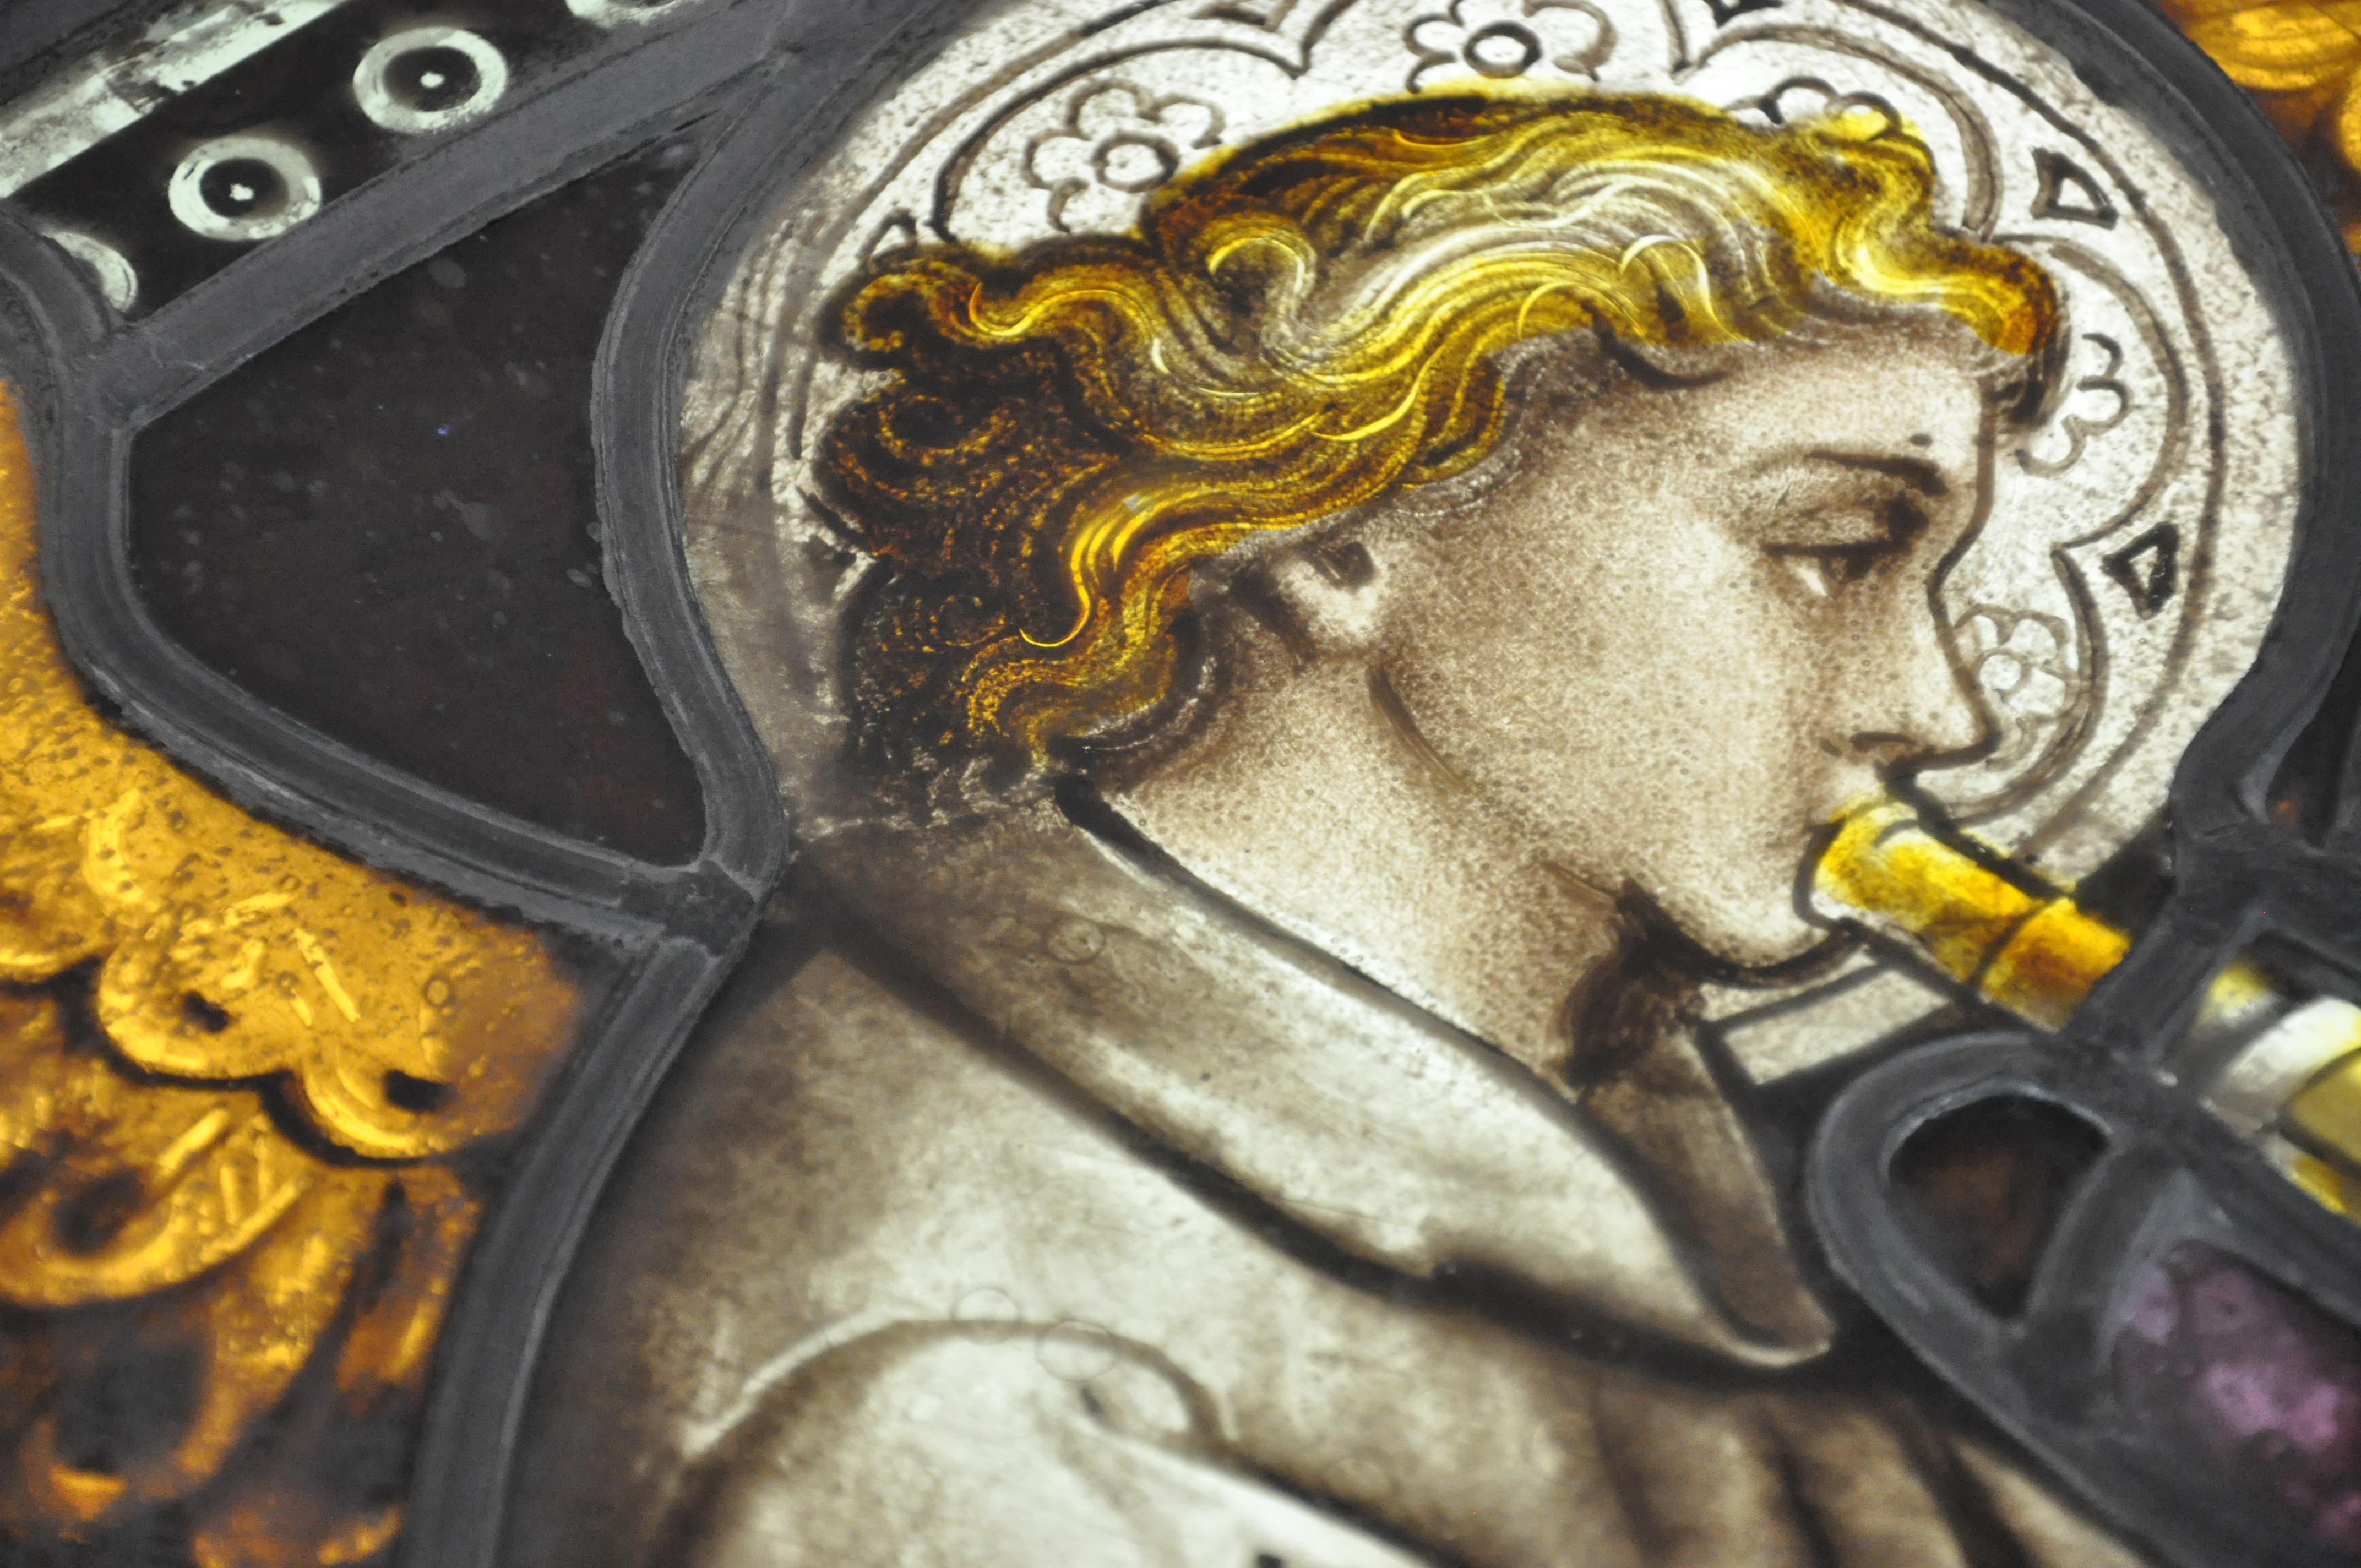 Work Progresses on St. Matthew's Stained Glass